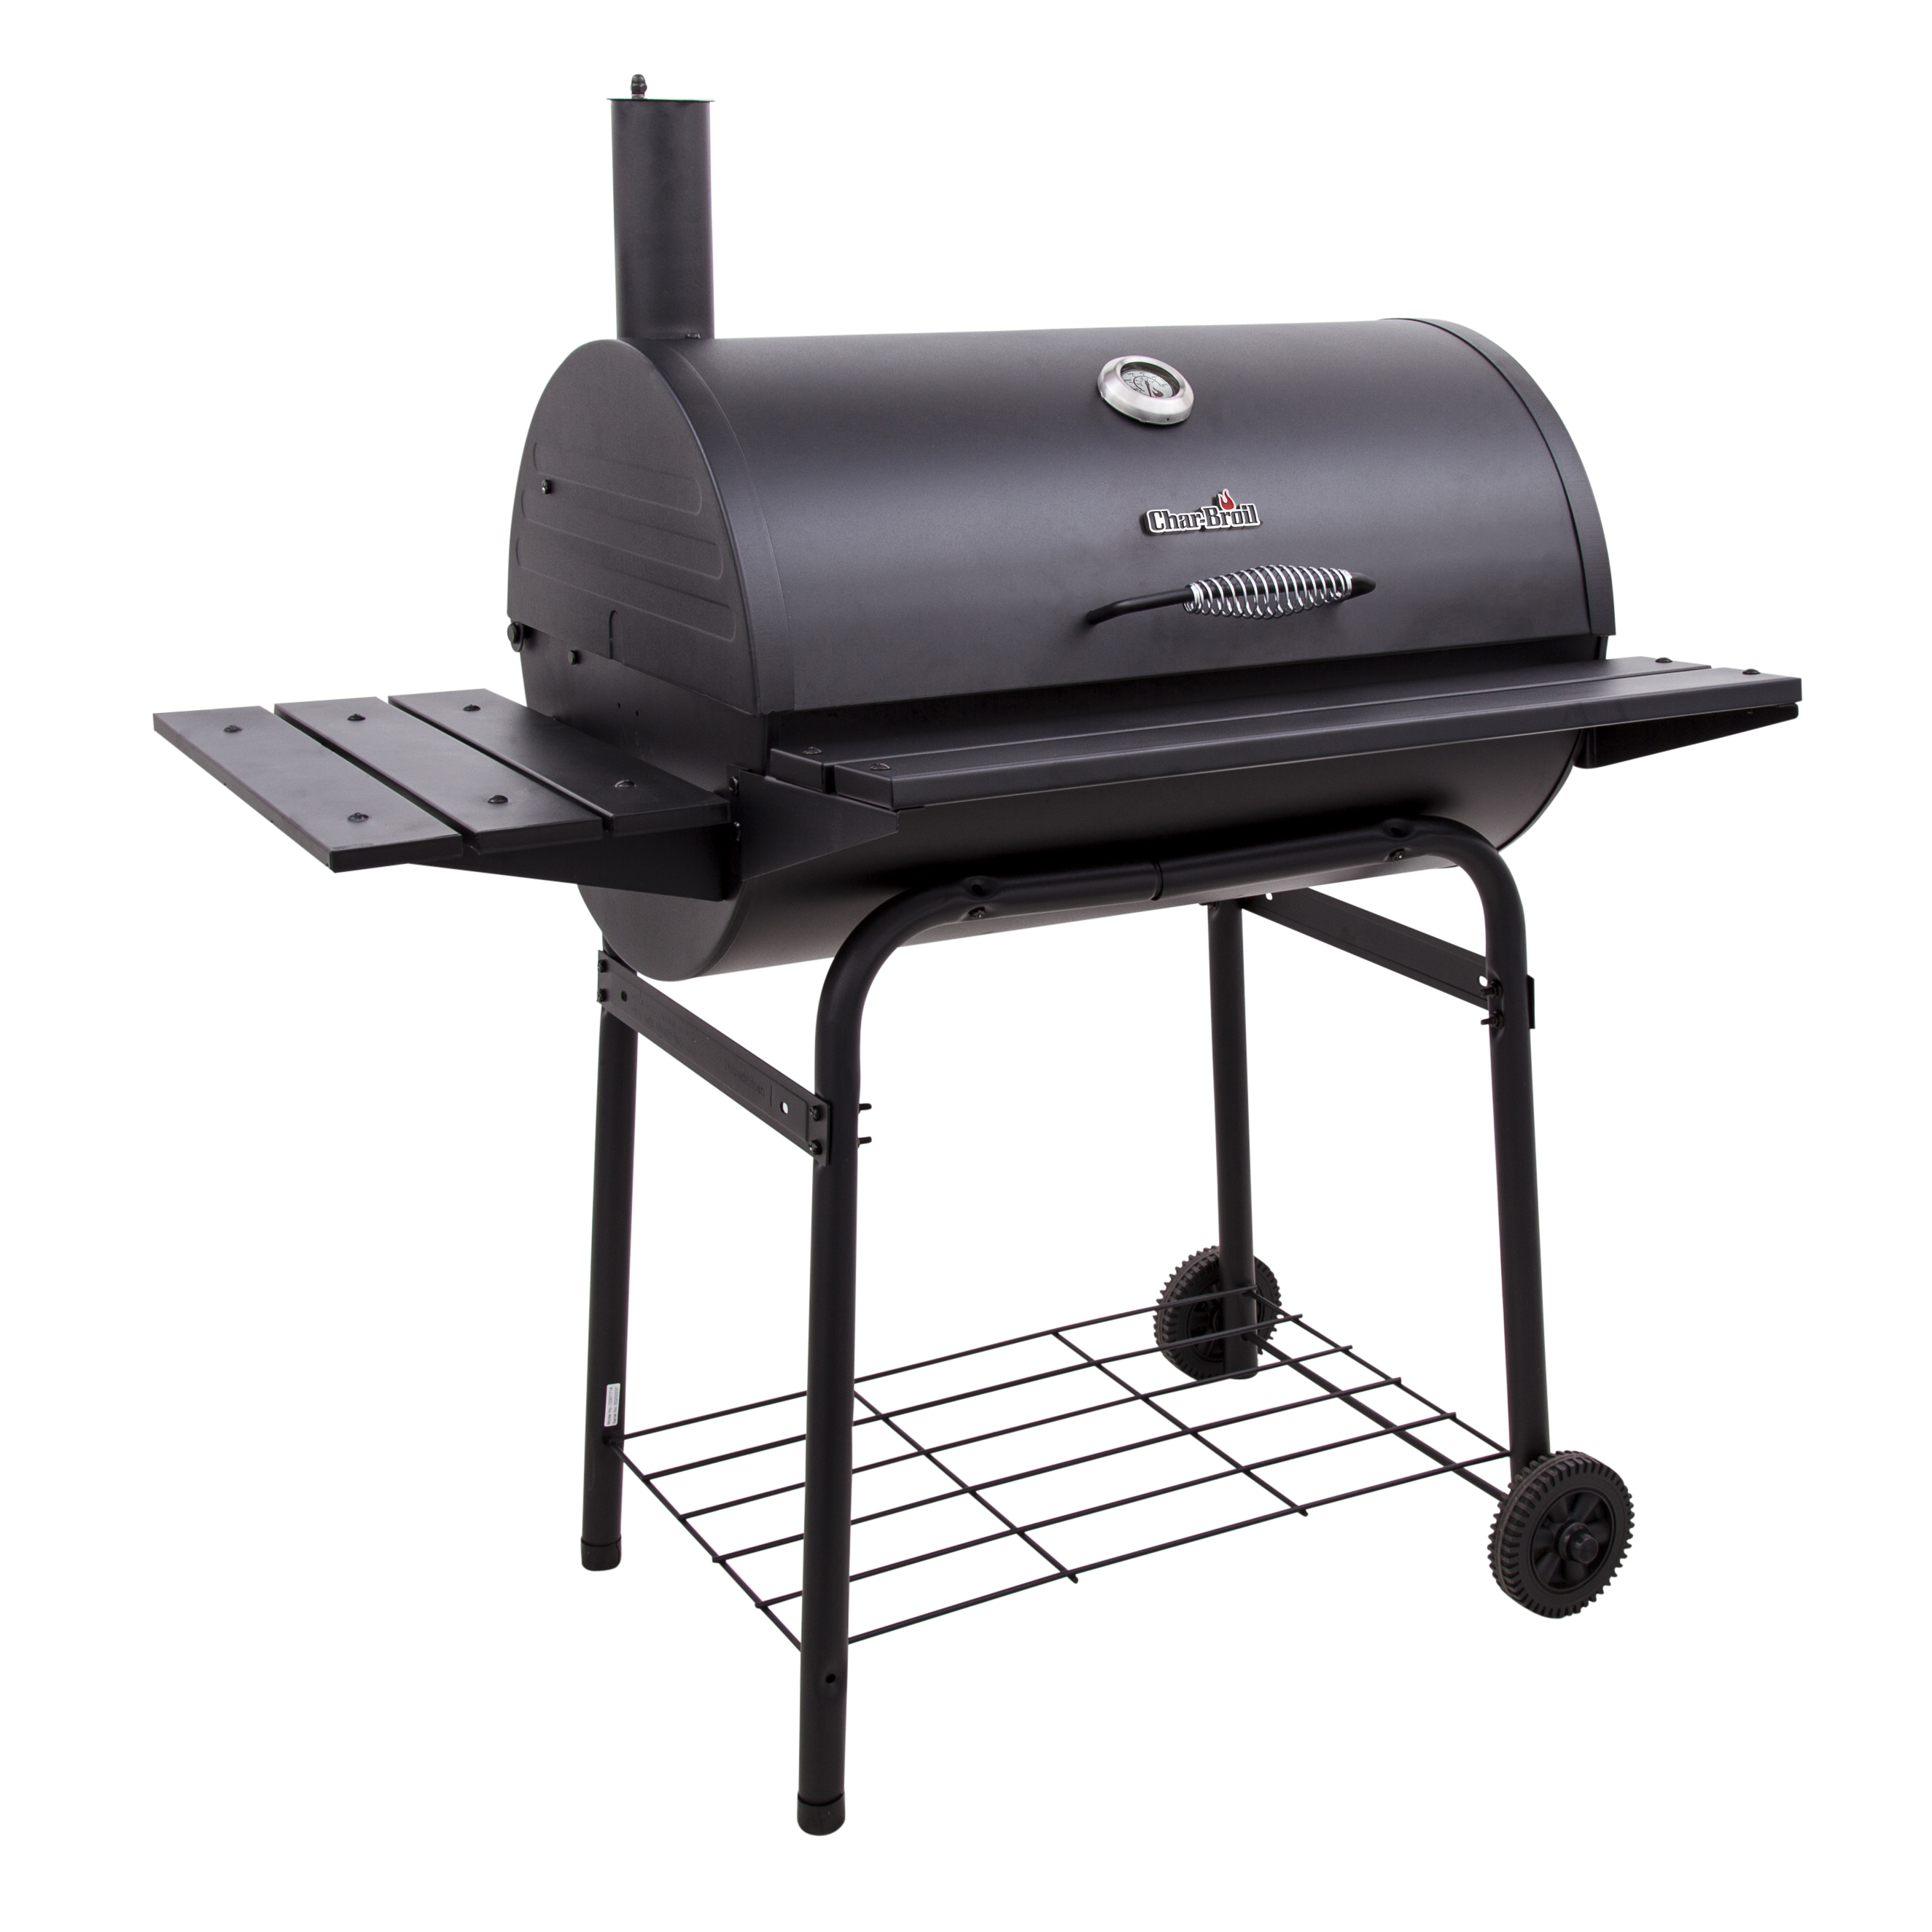 Help for CB American Gourmet Charcoal Grill - 800 Series | CB American Gourmet Charcoal Grill ...